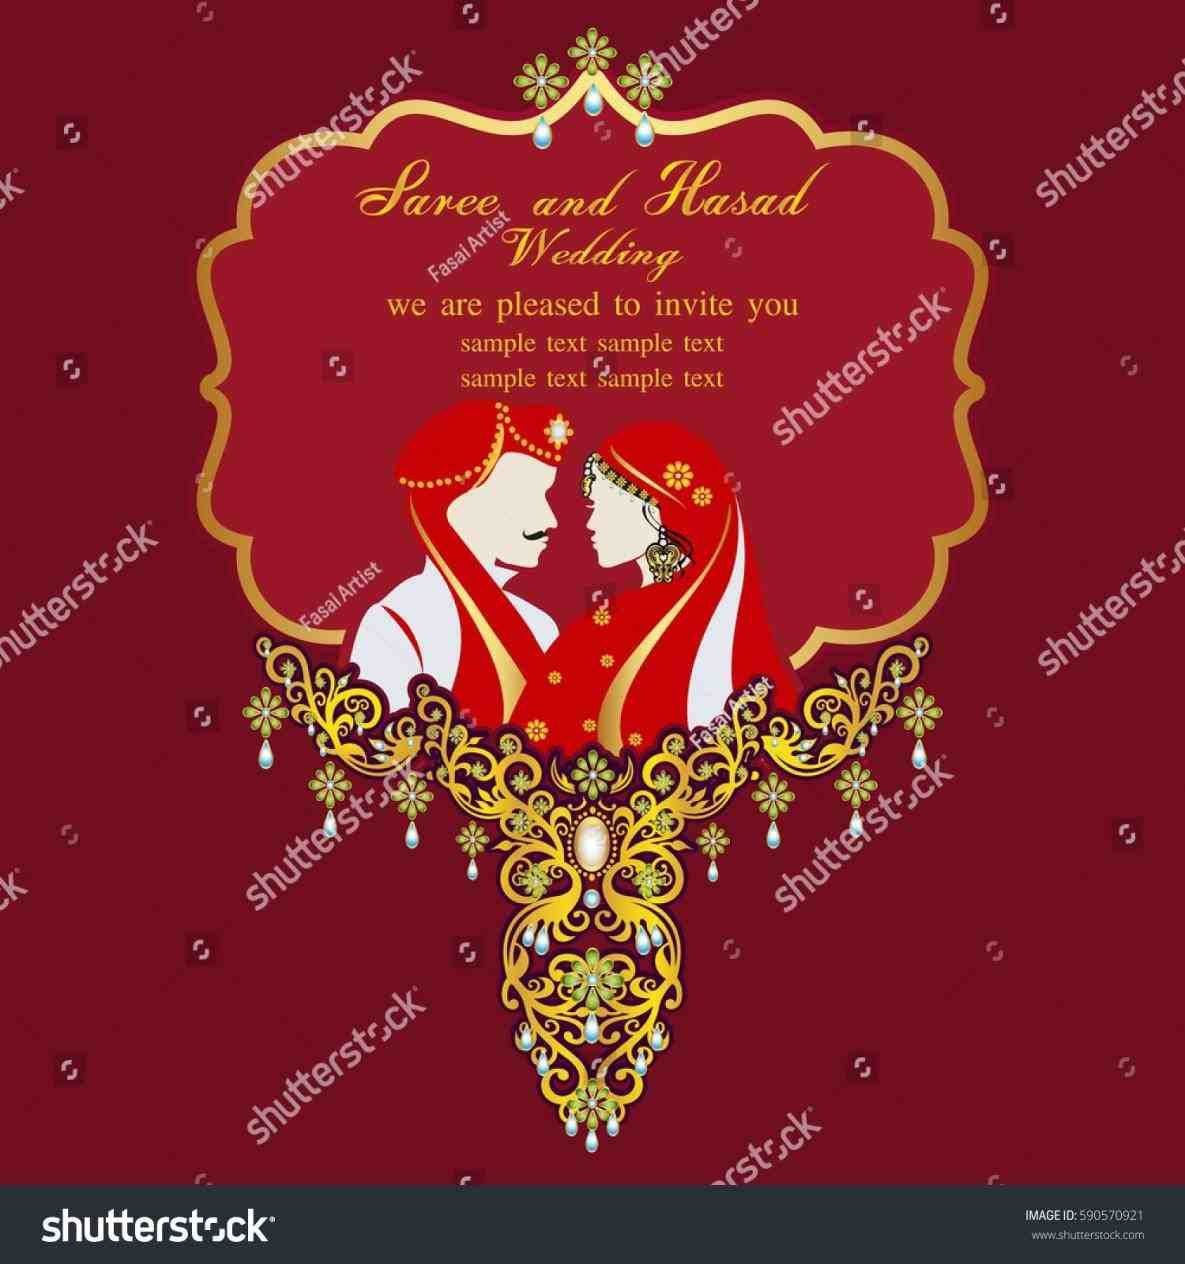 indian wedding invitation background designs free download in 2018 ...